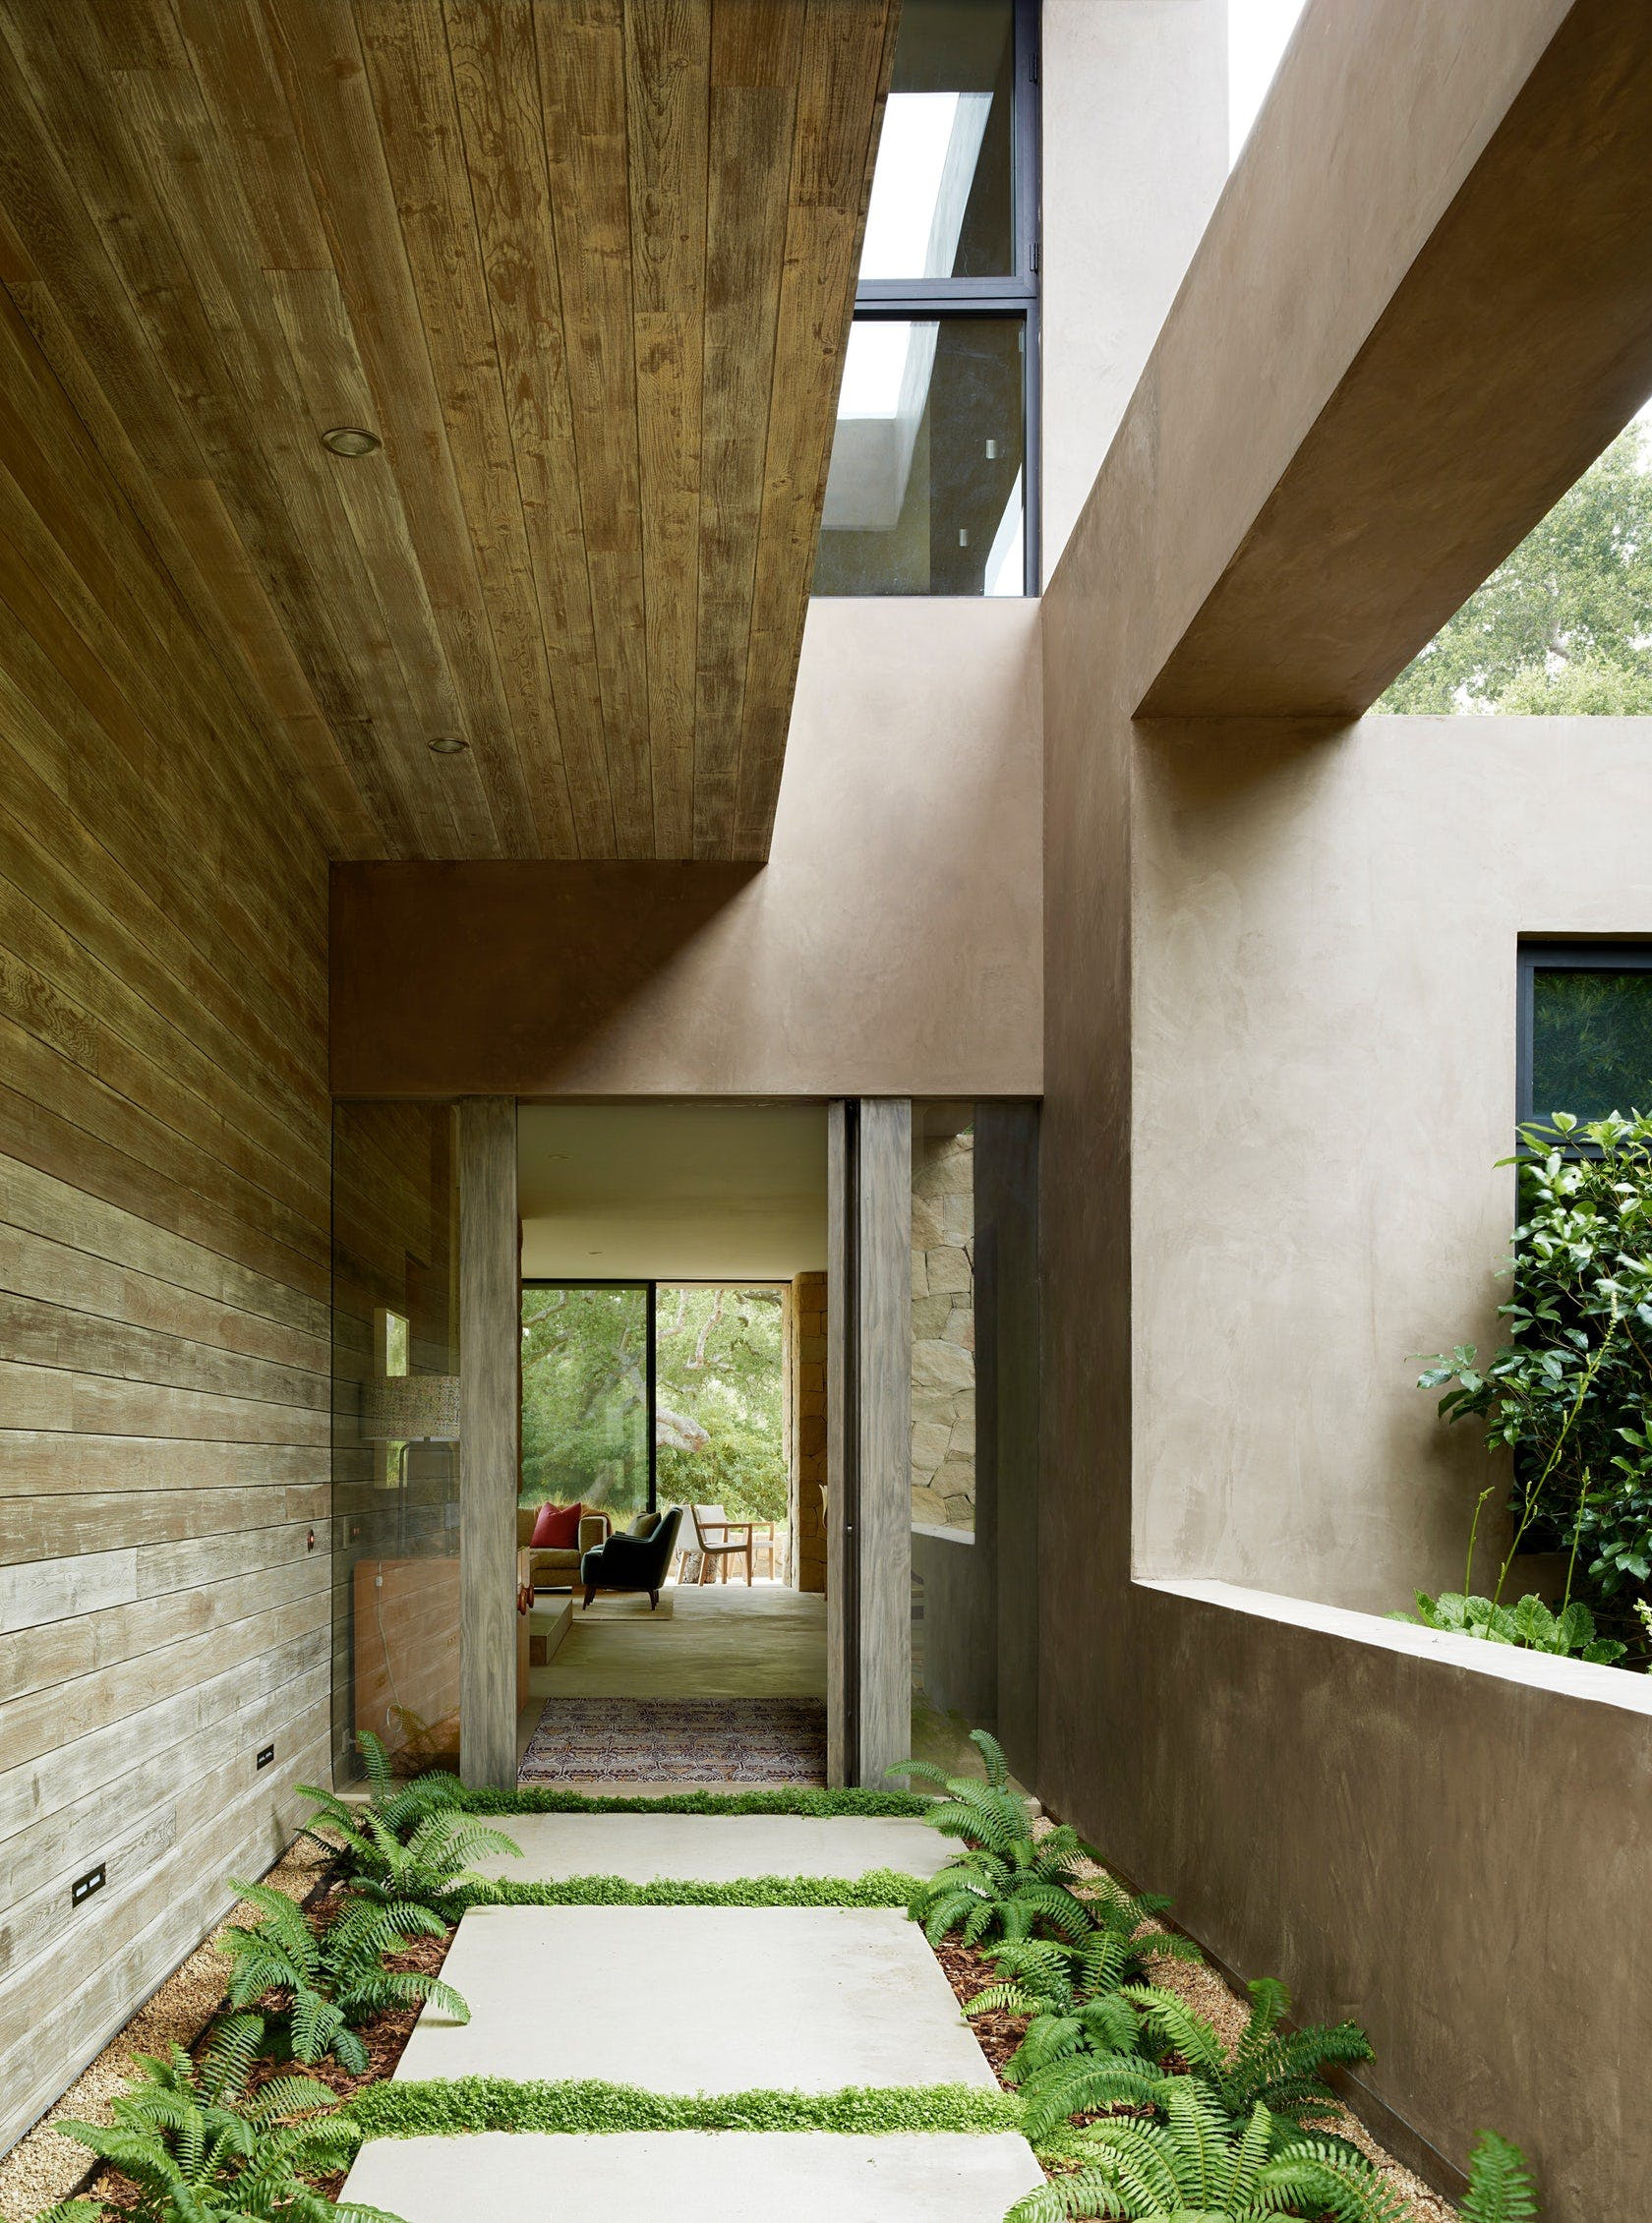 Modern Pictures Of Beautiful Houses Inspirational 12 Beautiful Modern Houses by Firms Currently Hiring